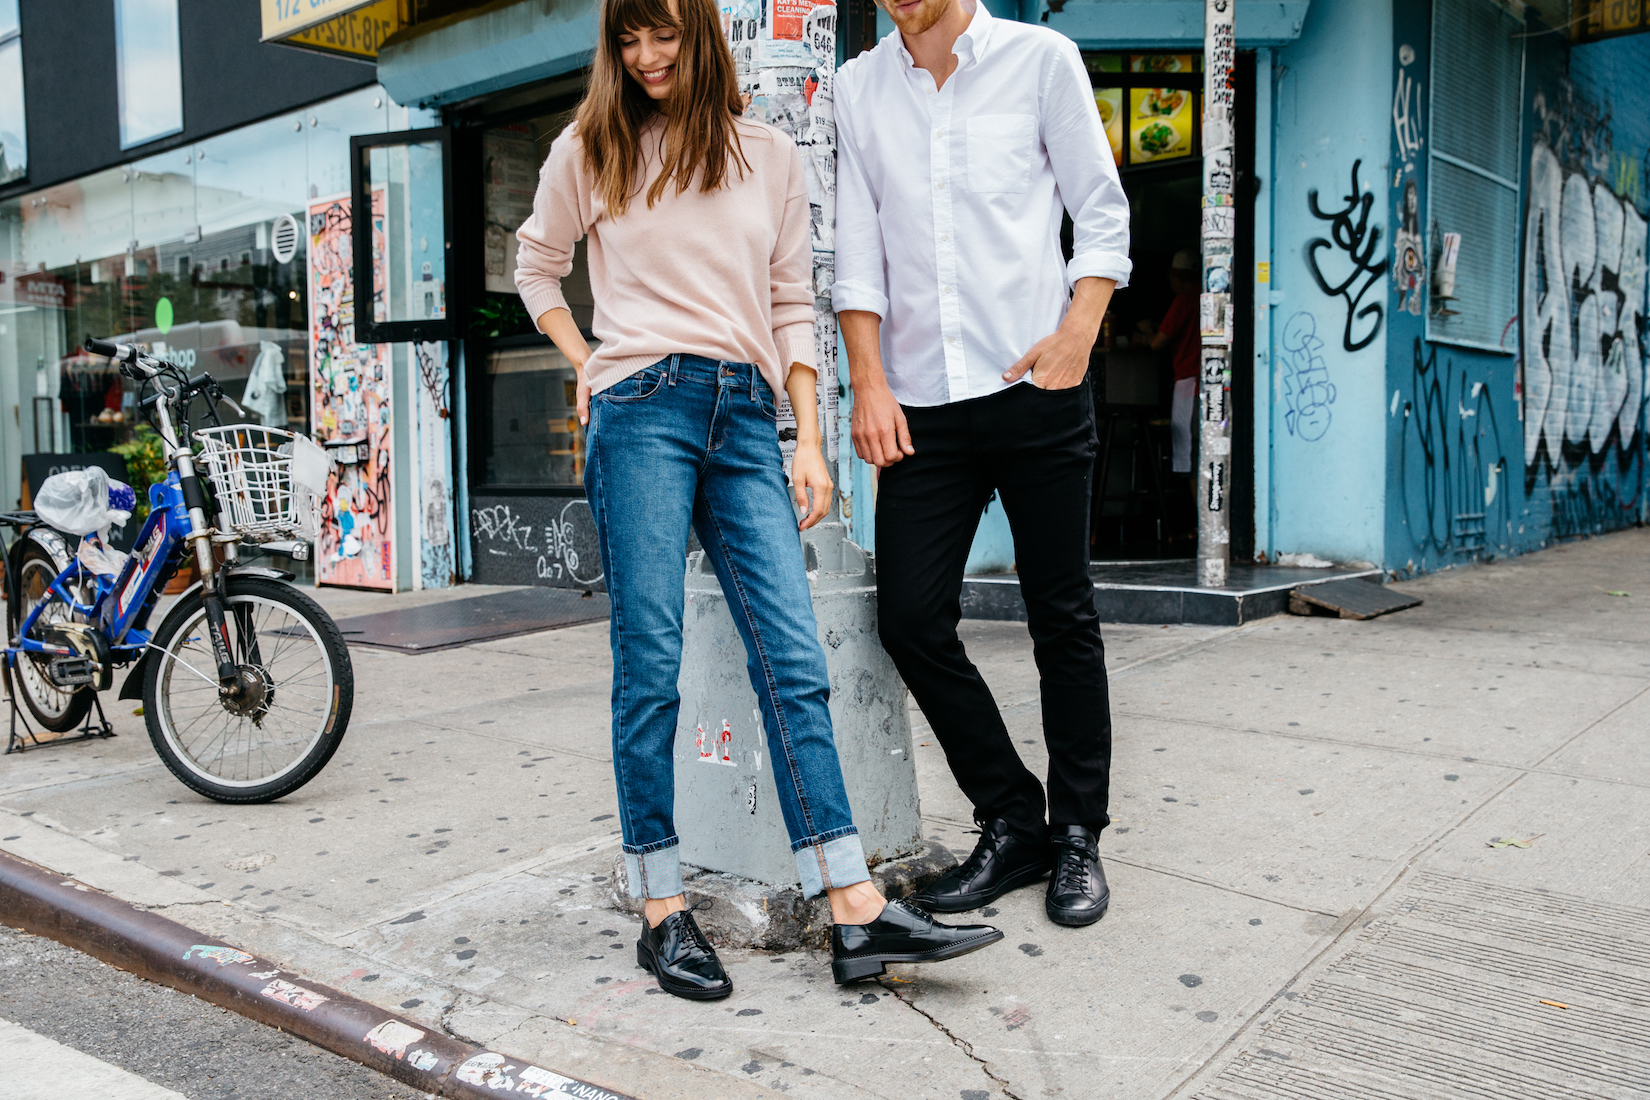 Mott & Bow: The best jeans for men and women at a fraction of the price |  CNN